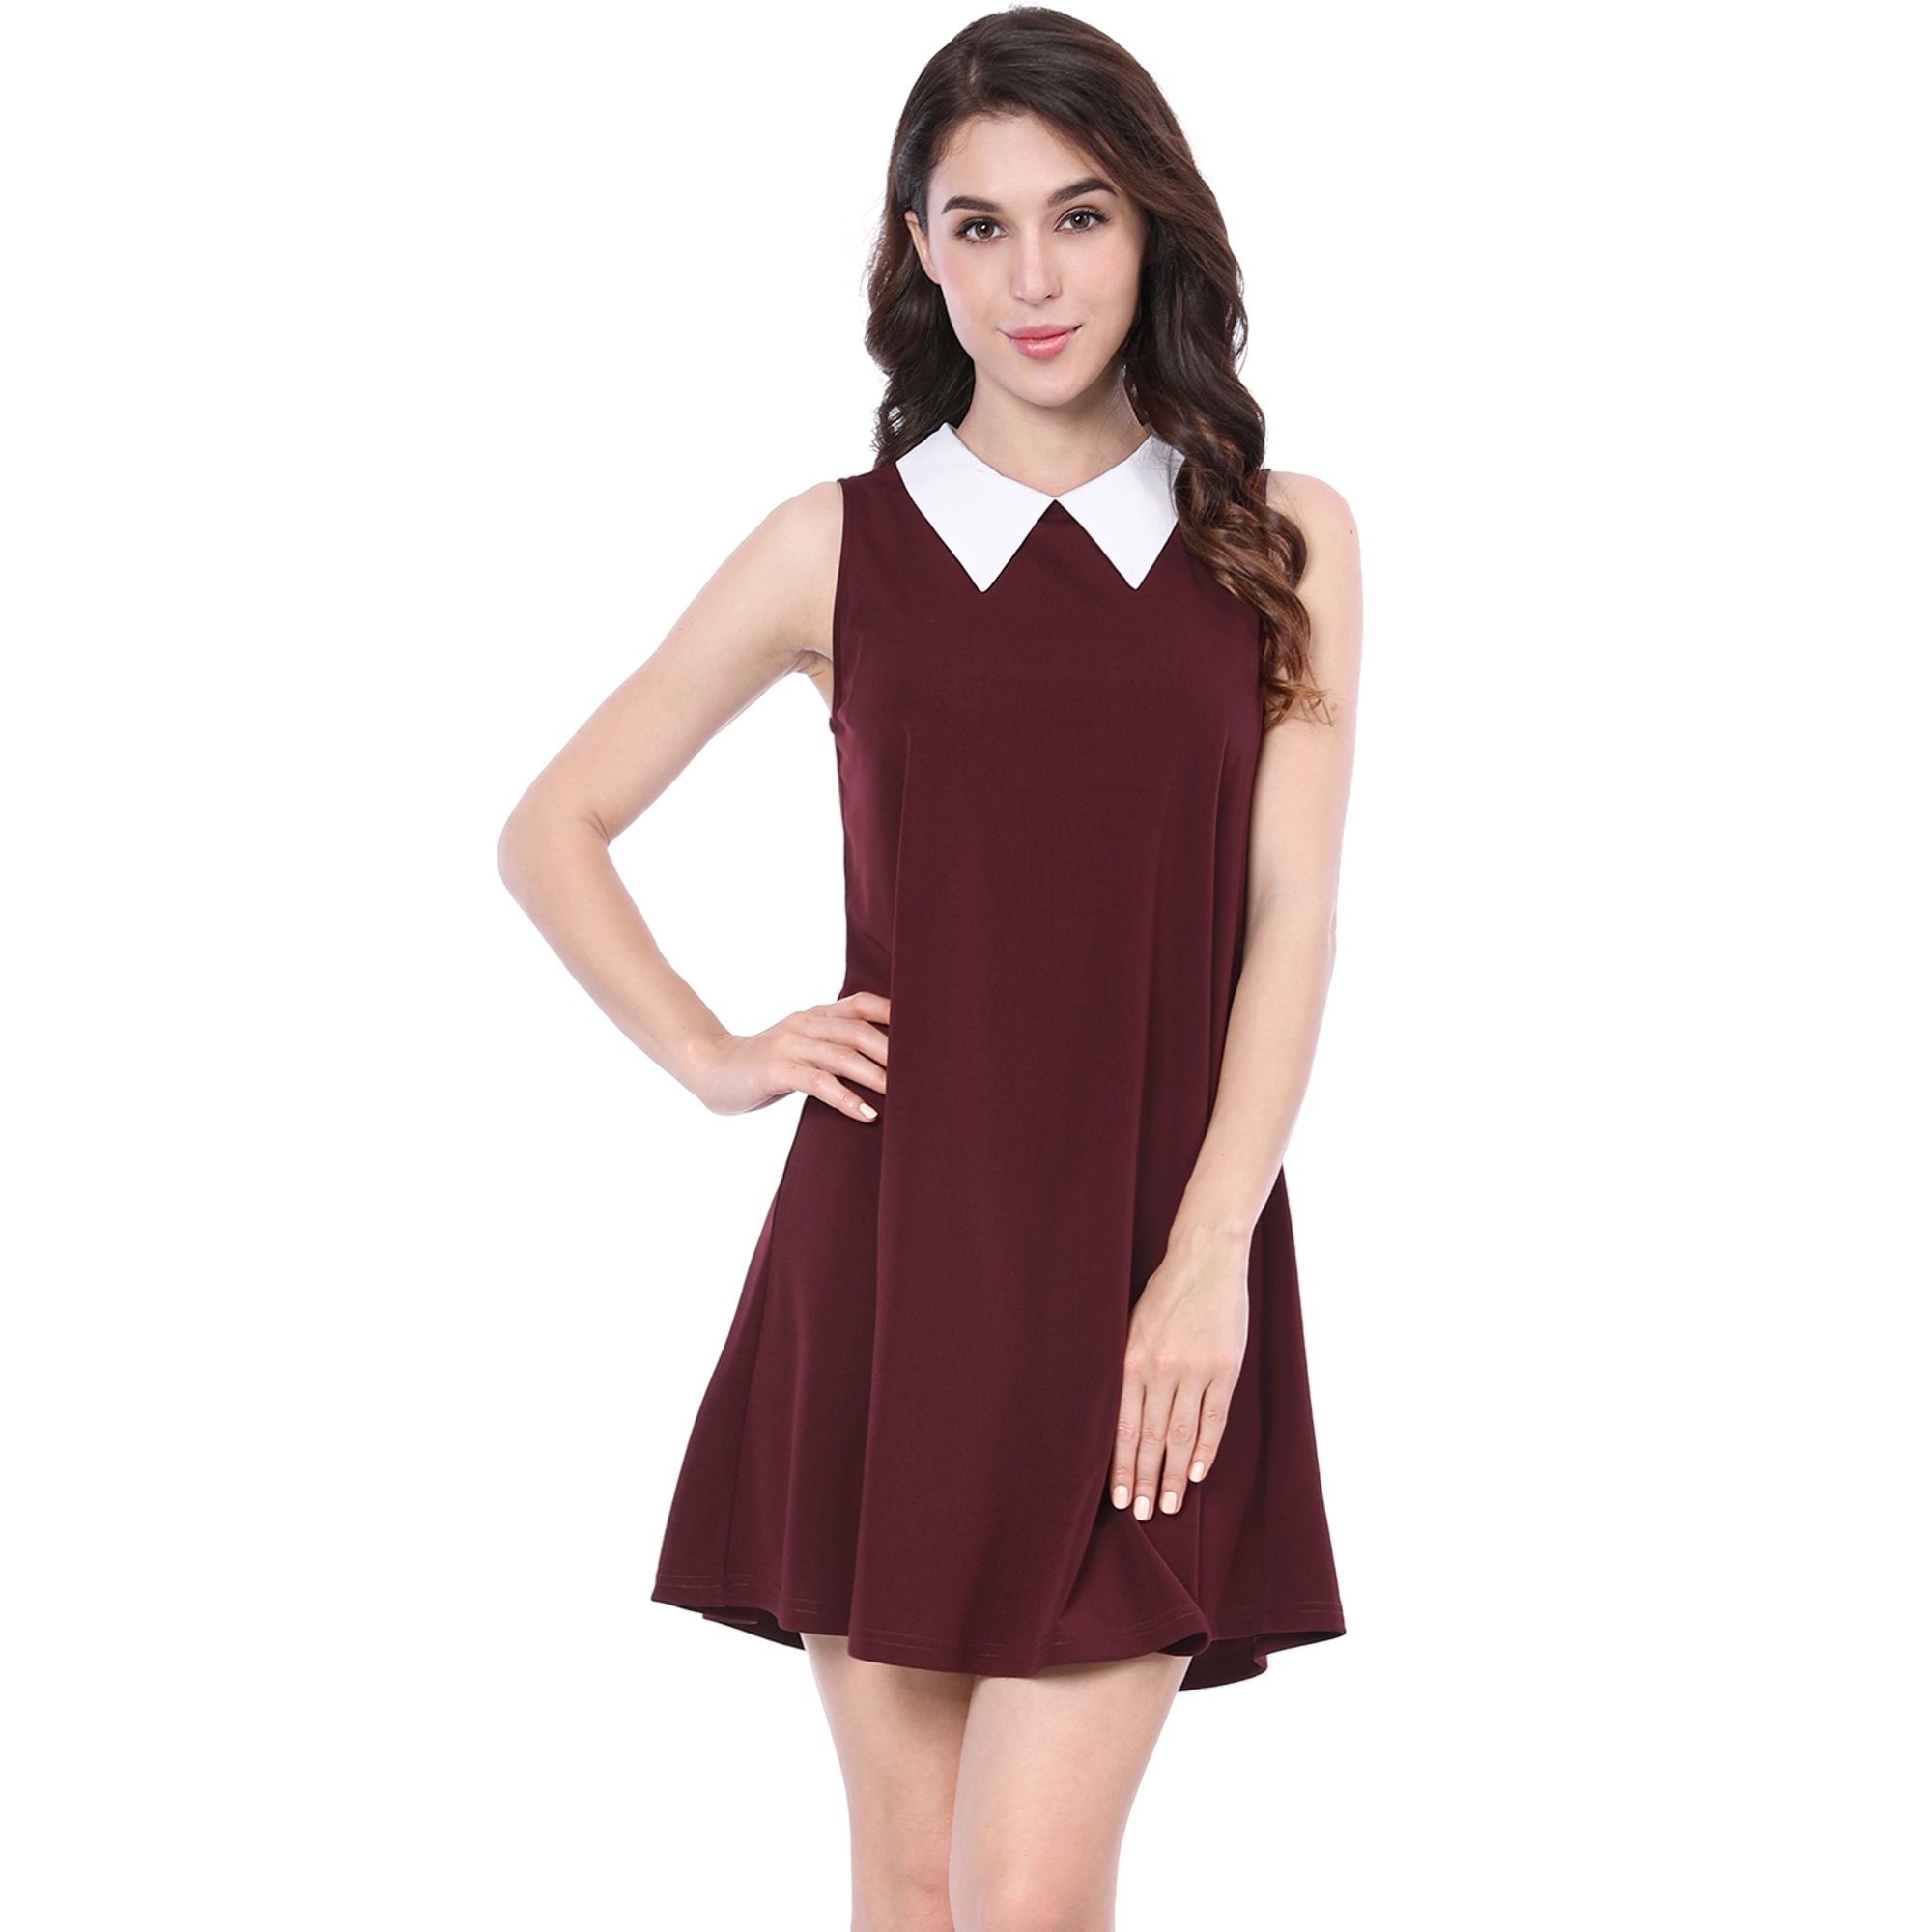 573c95d9997ed Unique Bargains Women s Peter Pan Sleeveless Above Knee Swing Dress Red  (Size XS   2)